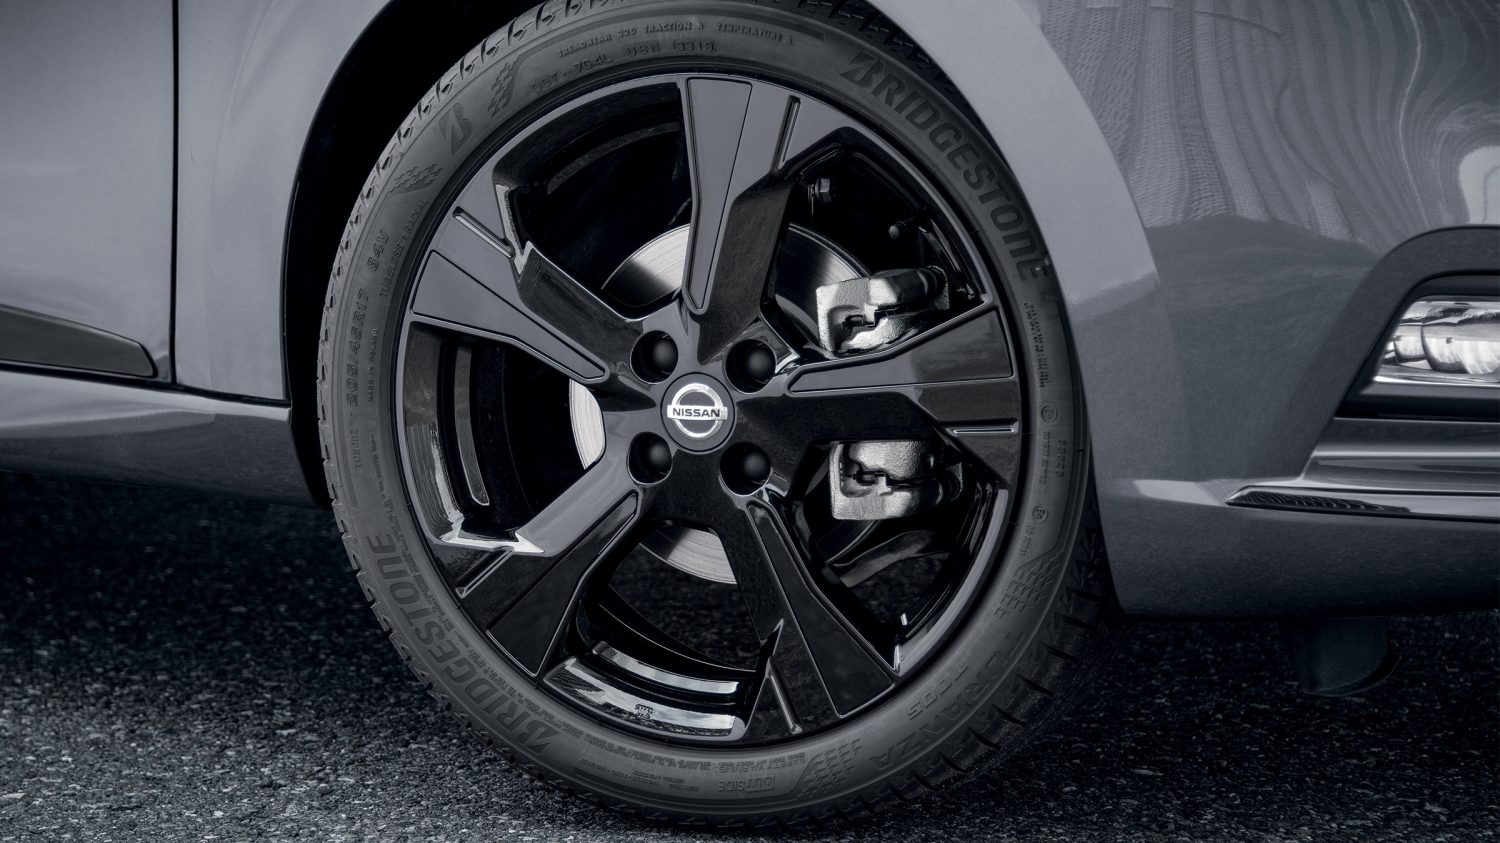 Nissan MICRA N-TEC 17 inch black alloy wheel